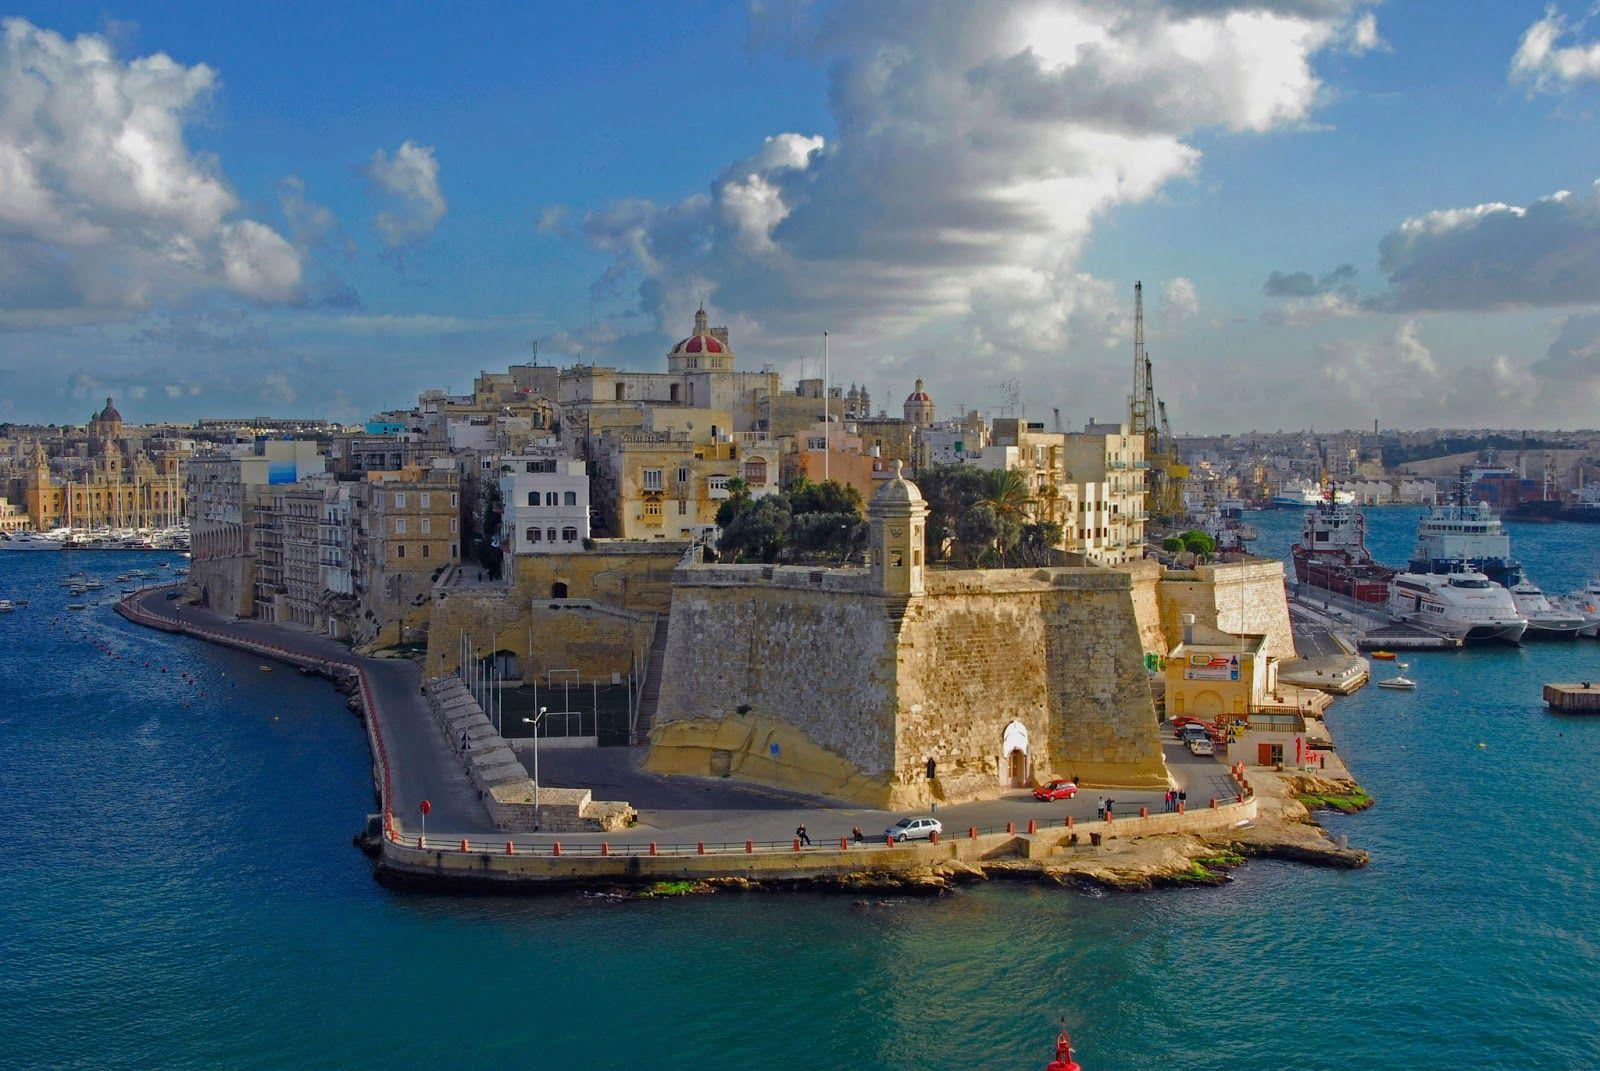 Malta monuments #image - HD Wallpapers